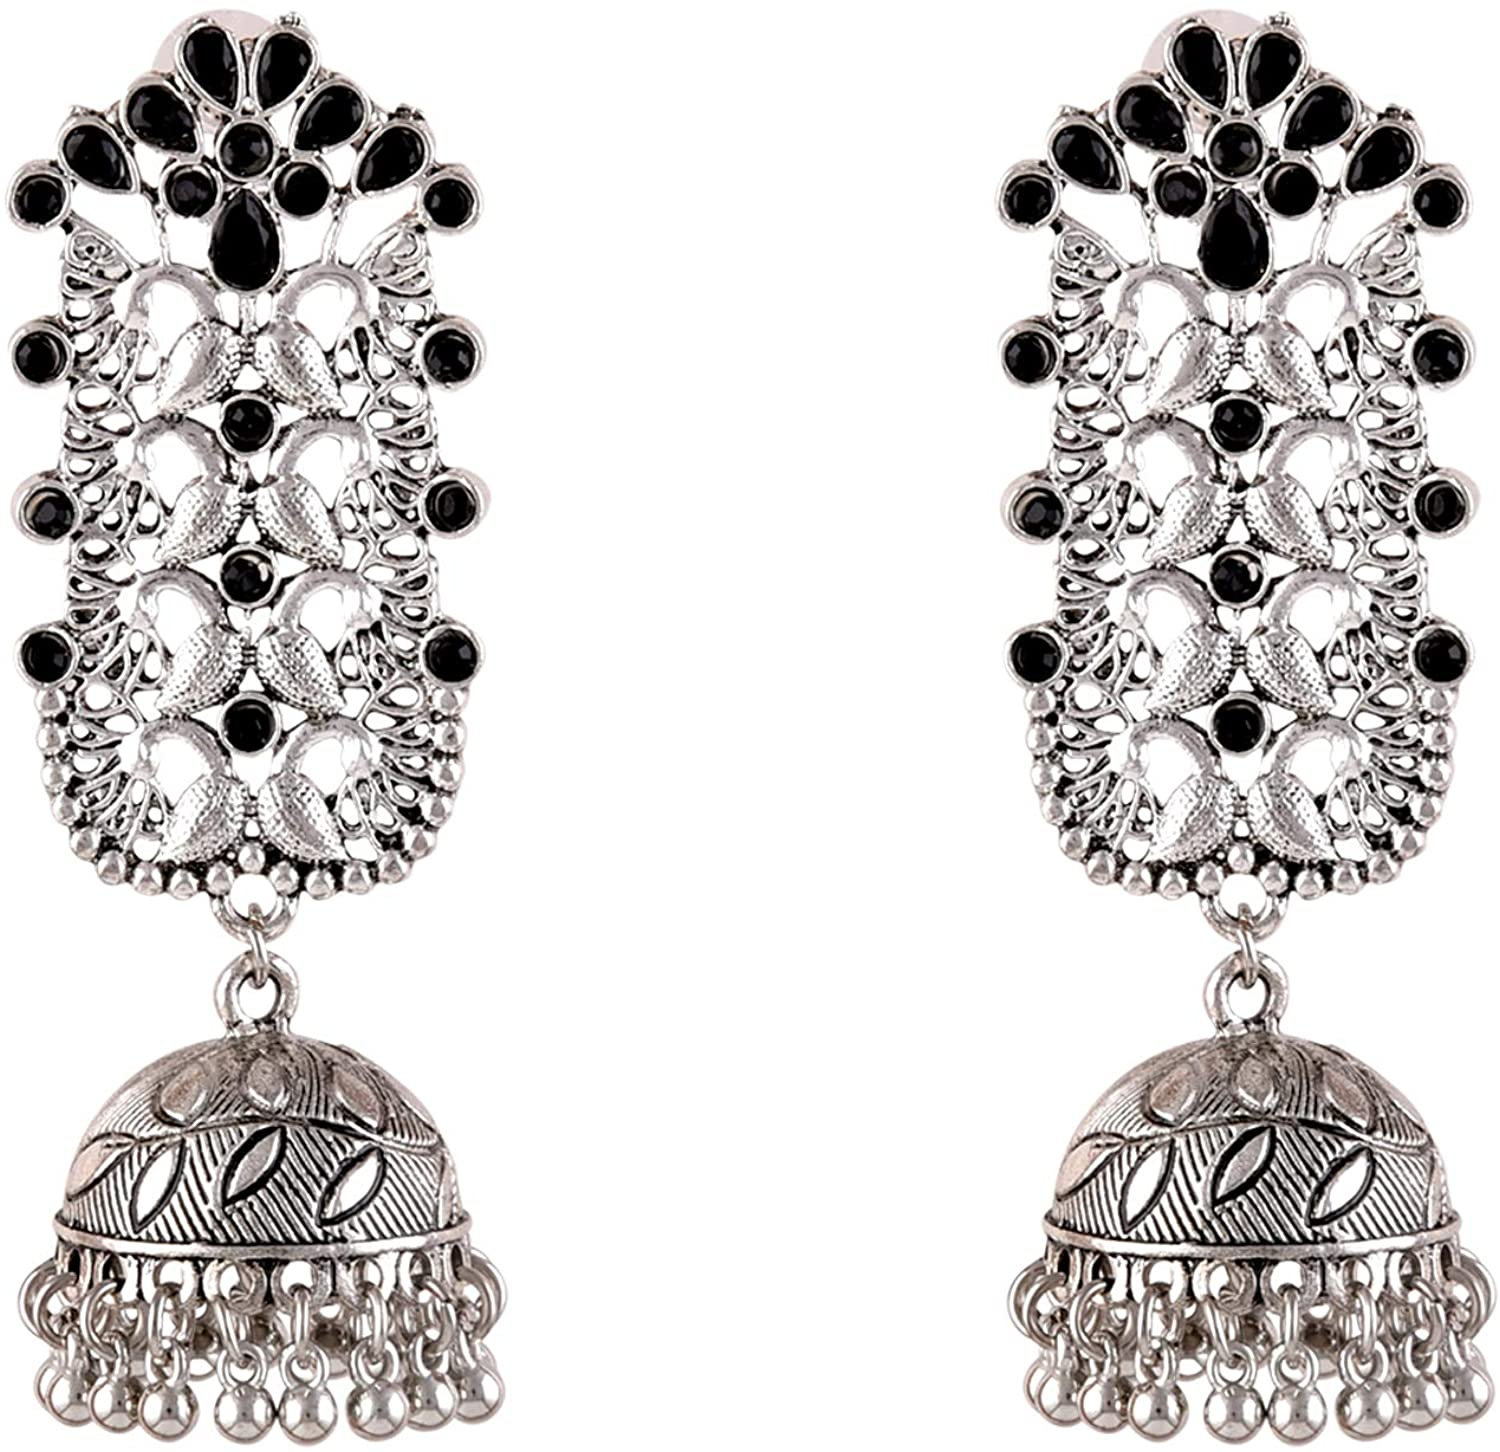 Saissa Silver Plated Oxidised Metal Peacock Jhumka Boho Earrings Indian Jewelry for Women